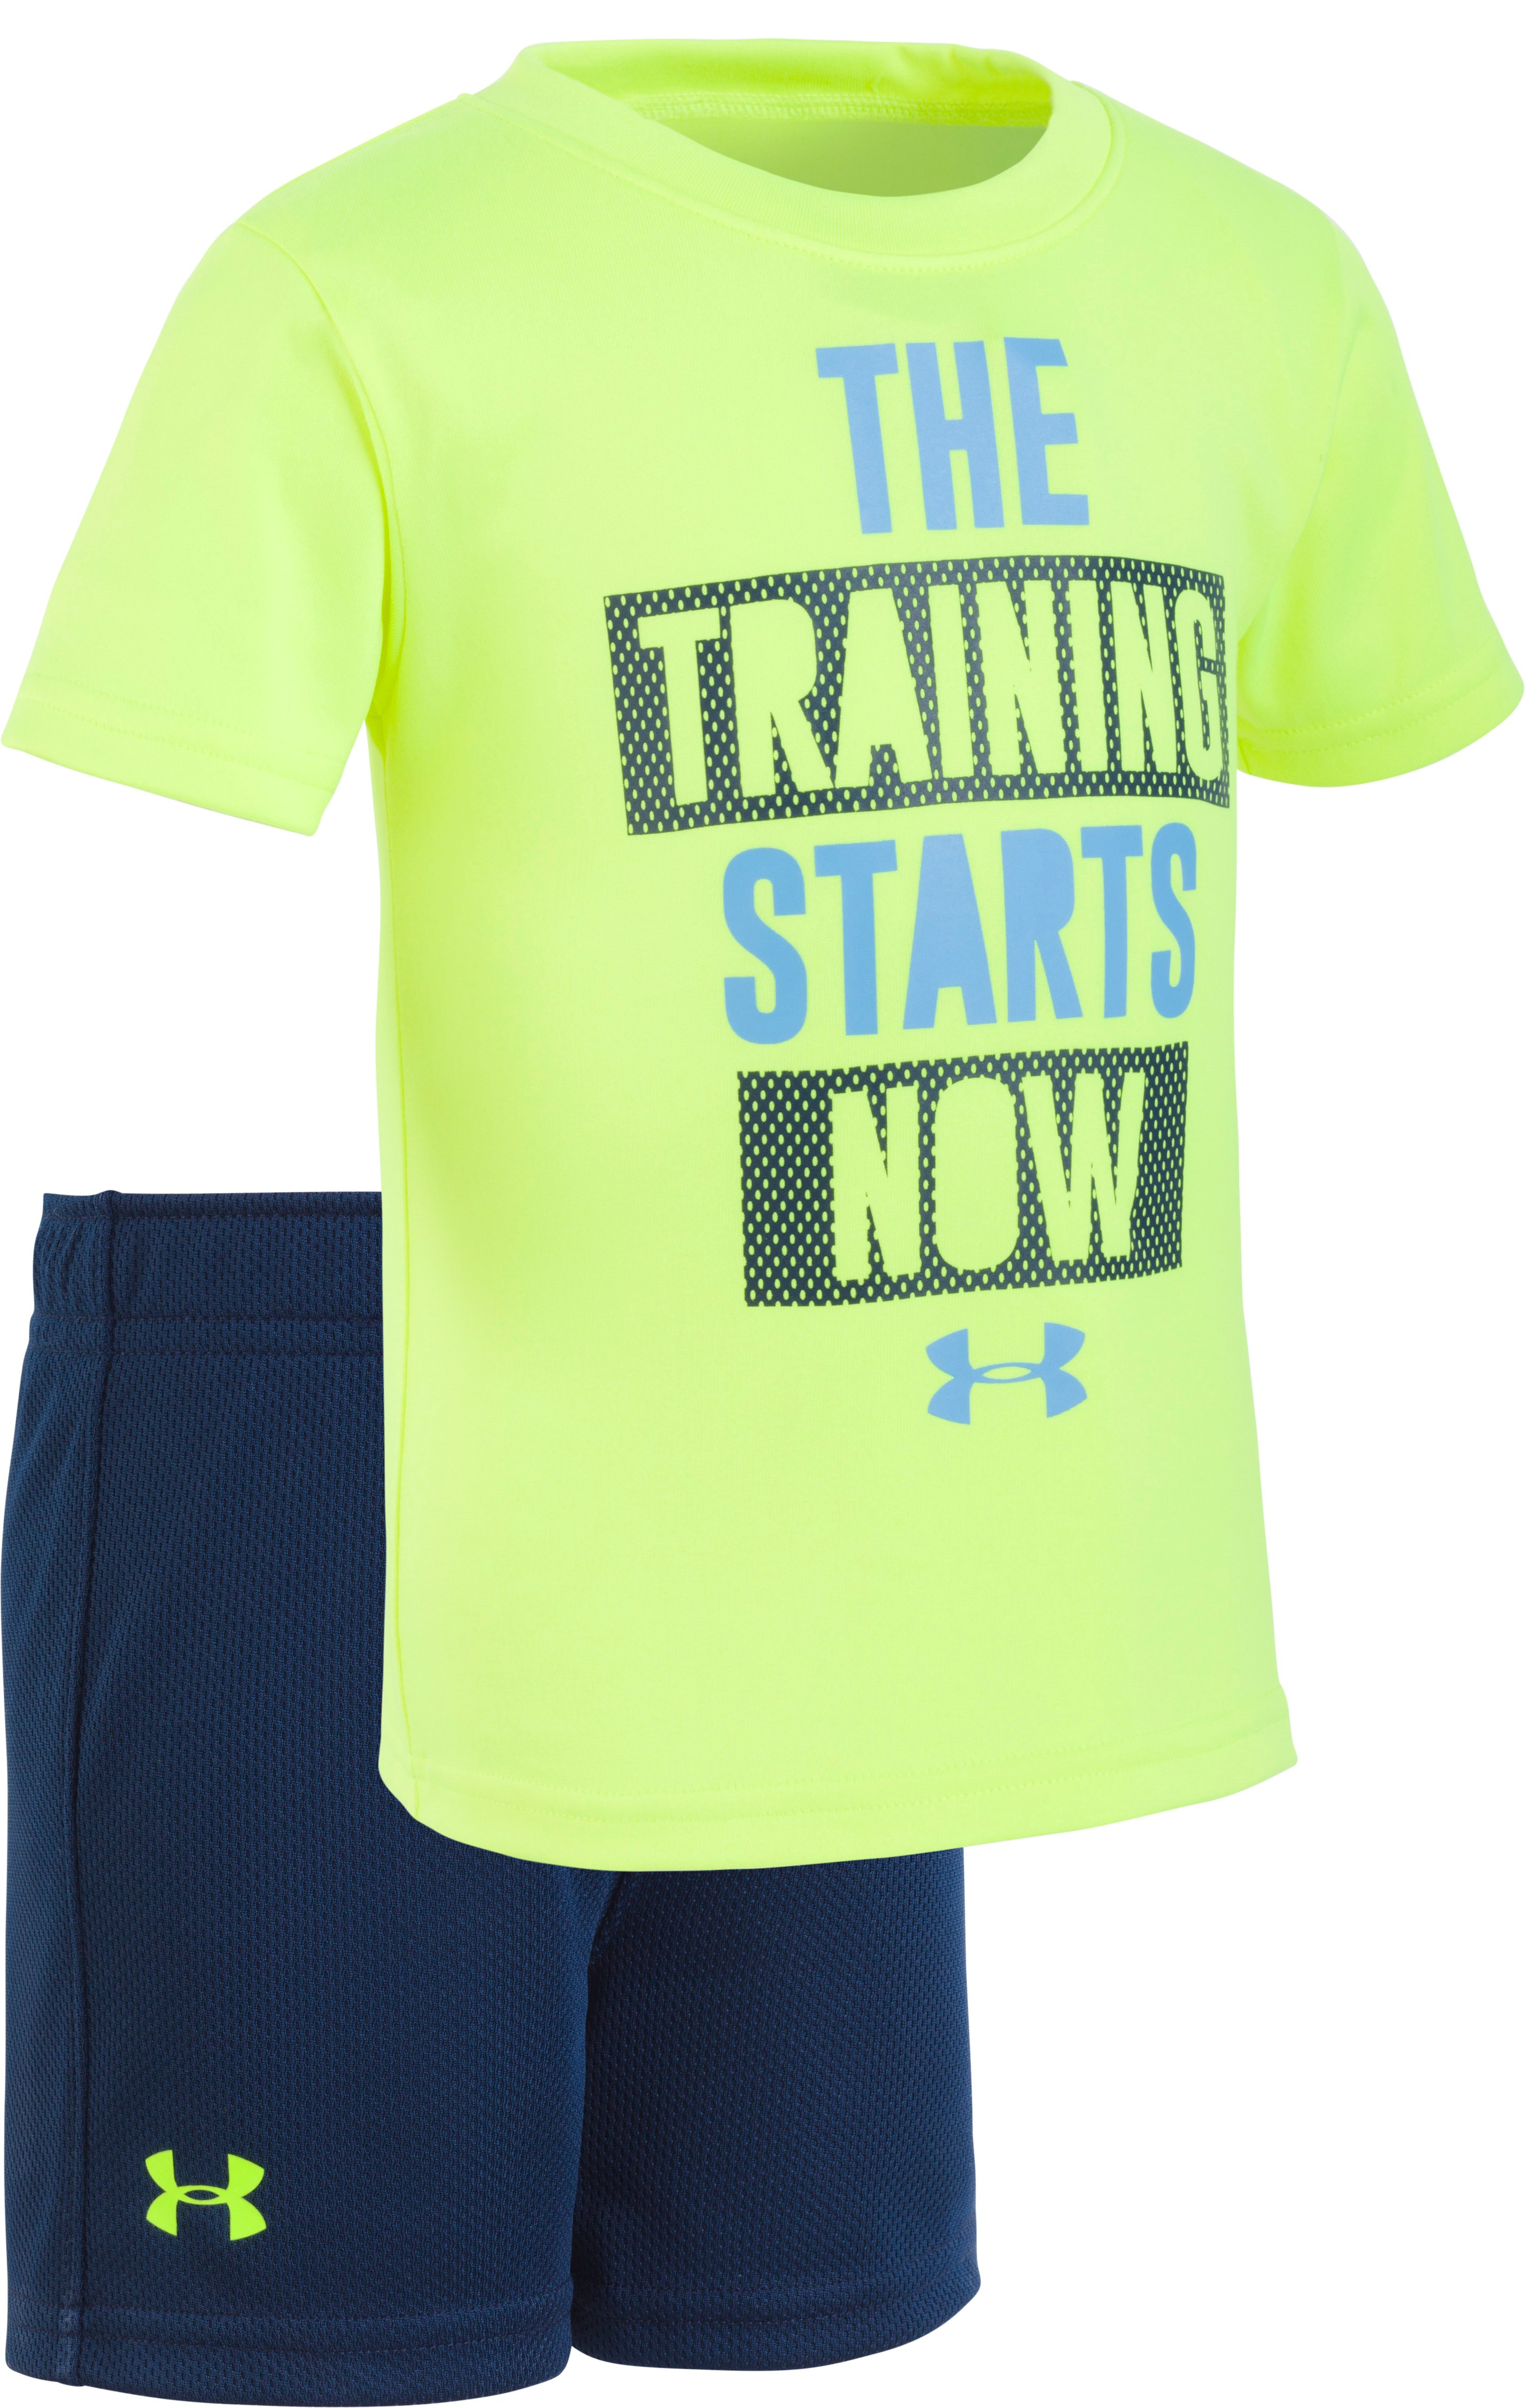 Boys' Infant UA The Training Starts Now Set , High-Vis Yellow